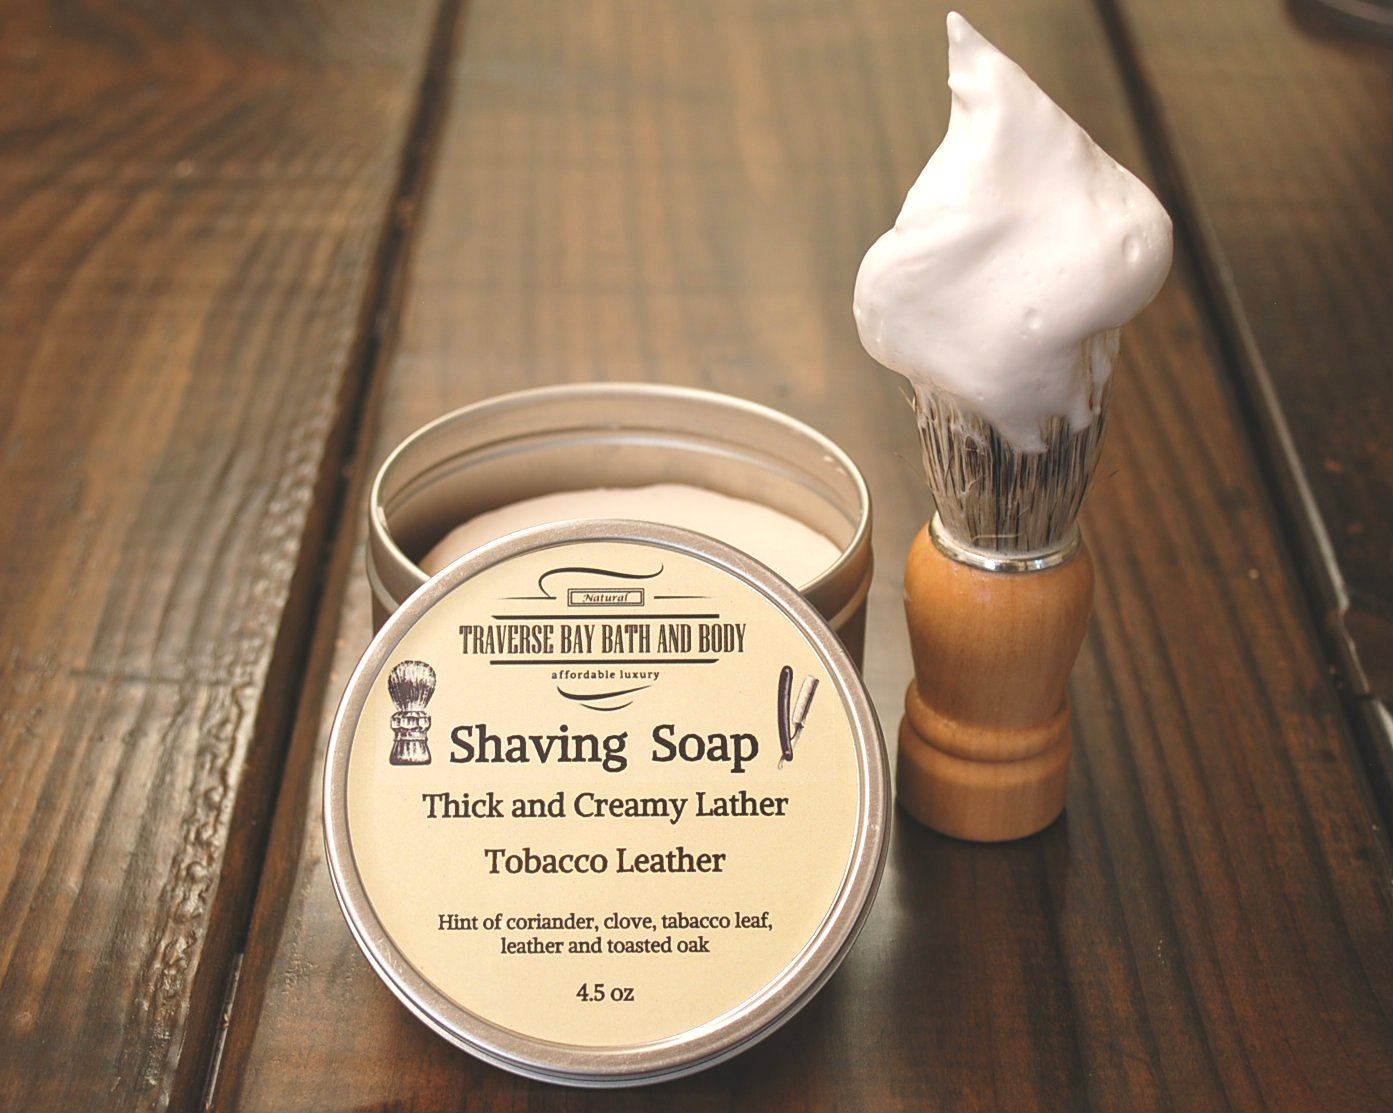 Bay Rum 4.5 oz Shaving Soap in a usable tin great for travel or home use. for wet shaving.